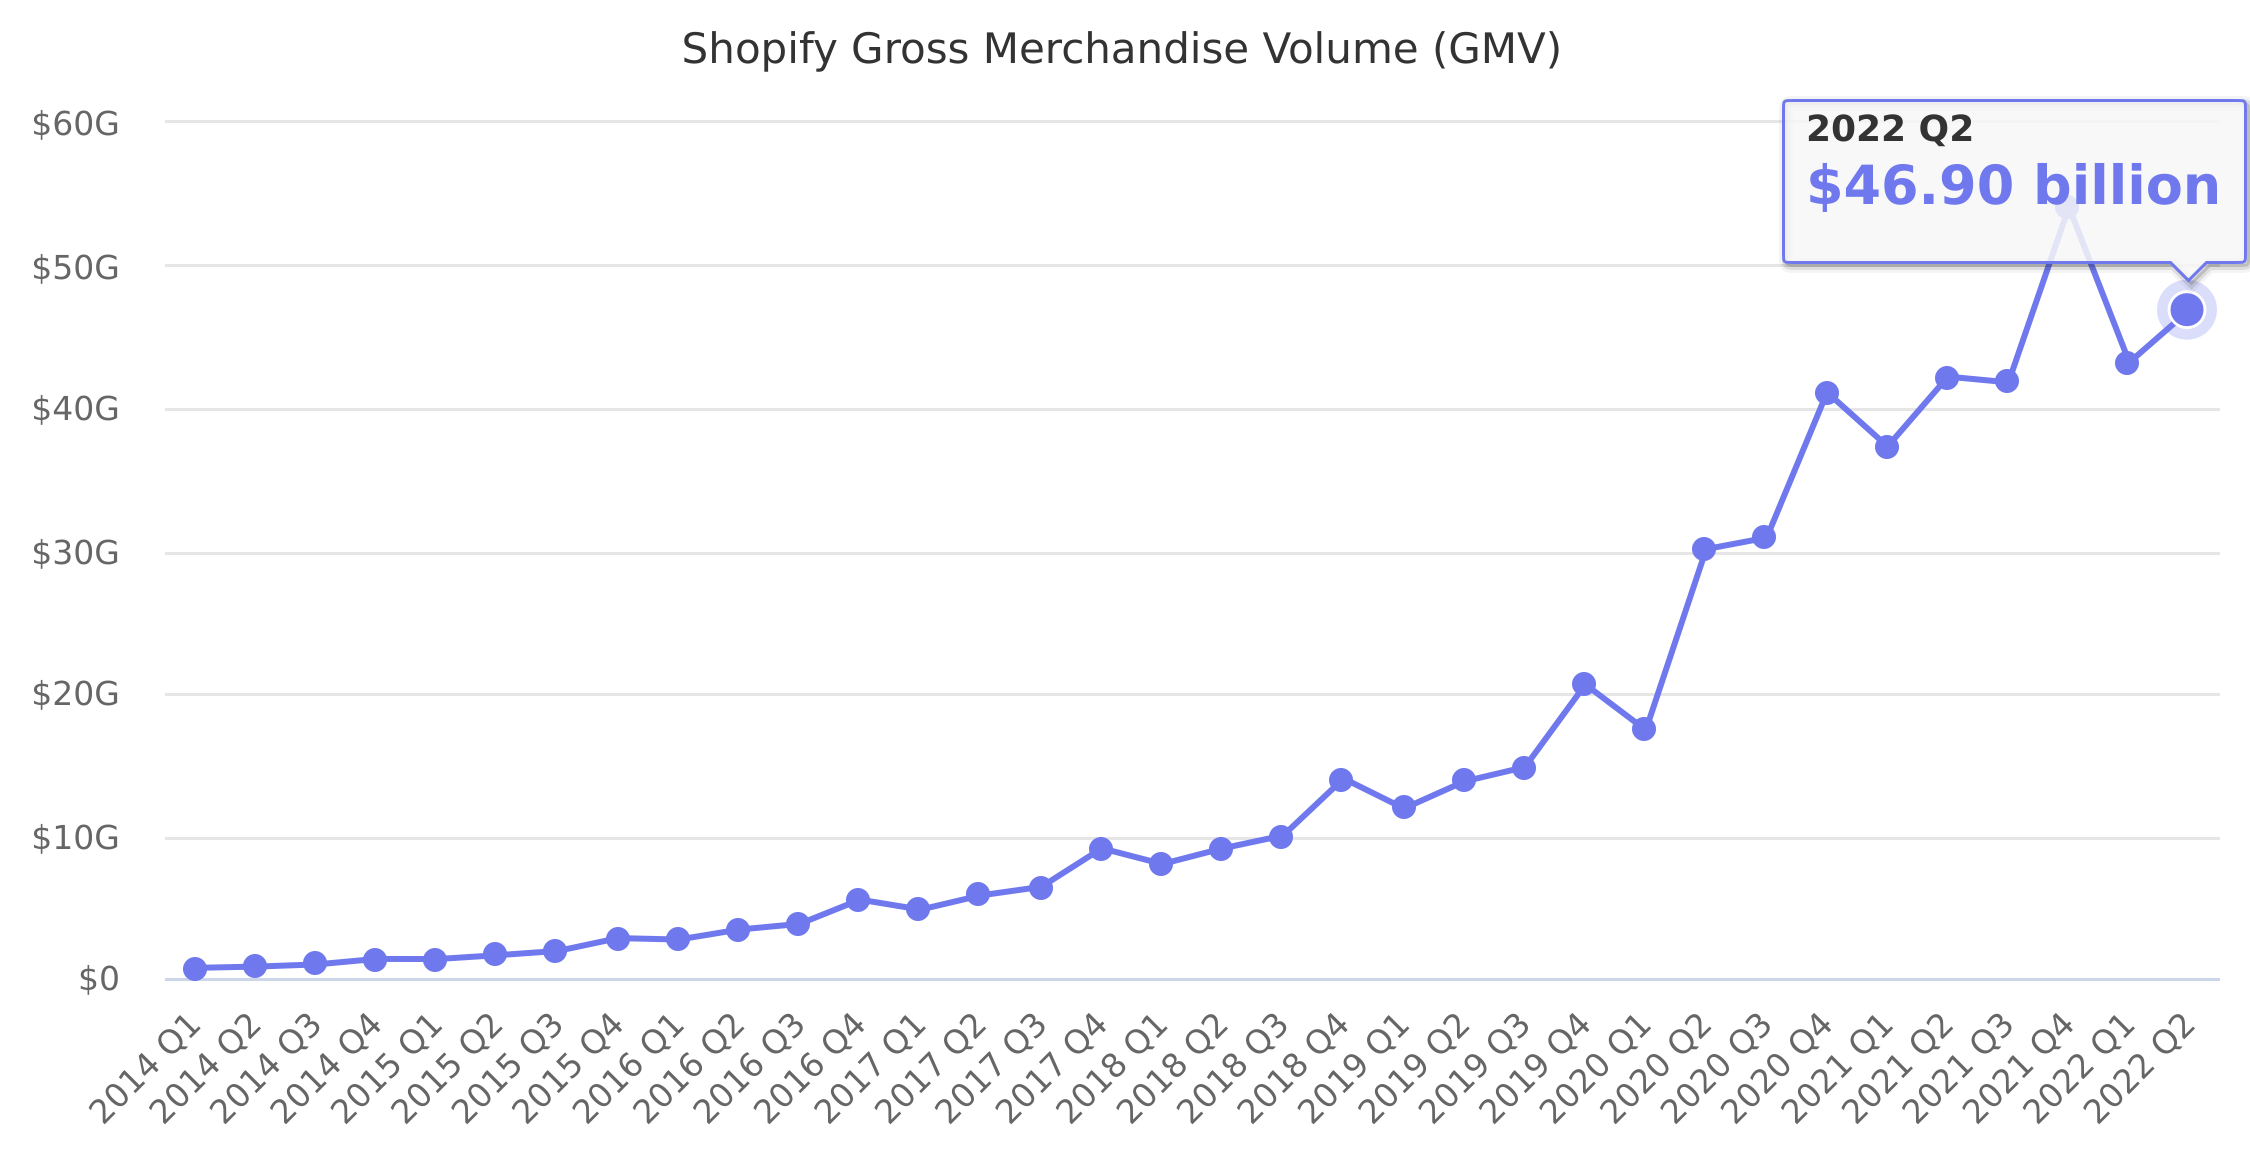 Shopify Gross Merchandise Volume (GMV)